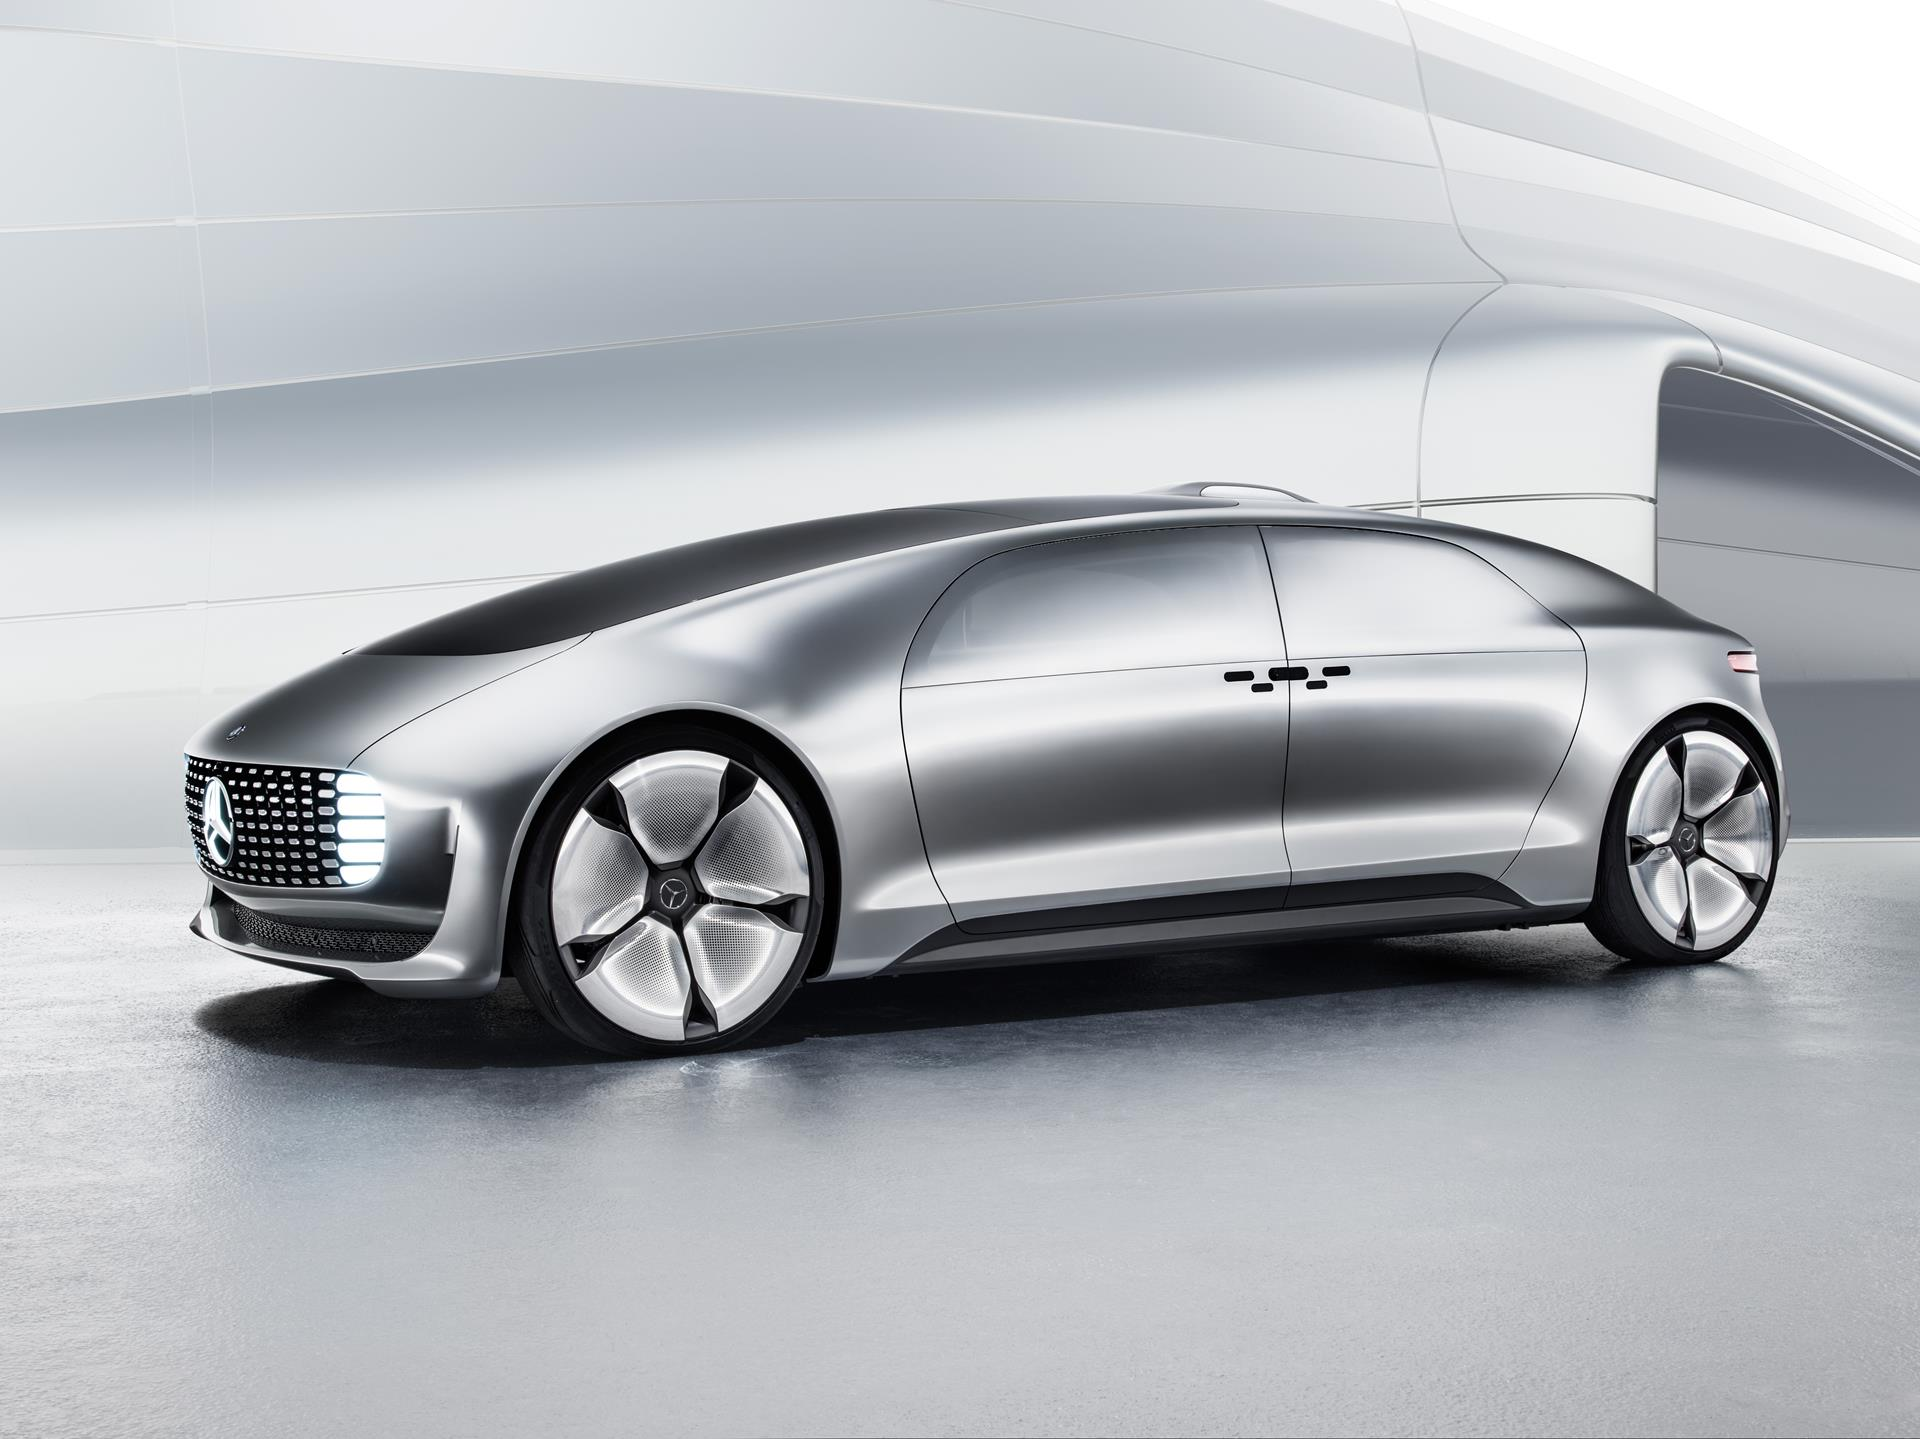 2015 Mercedes Benz F 015 Luxury In Motion Concept News And